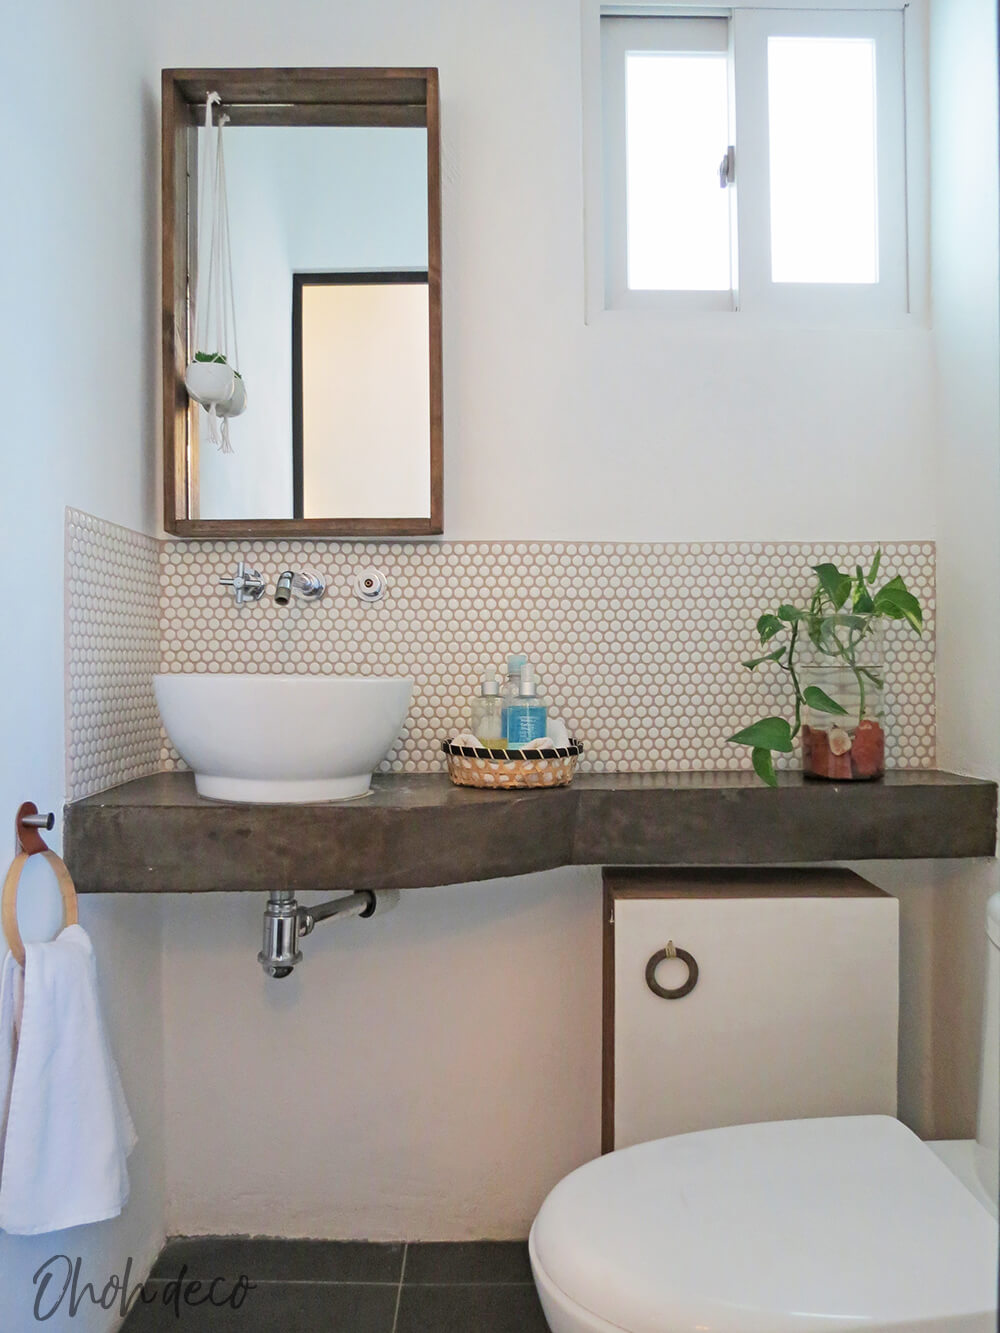 Incorporating Textures and Natural Elements Into the Bathroom